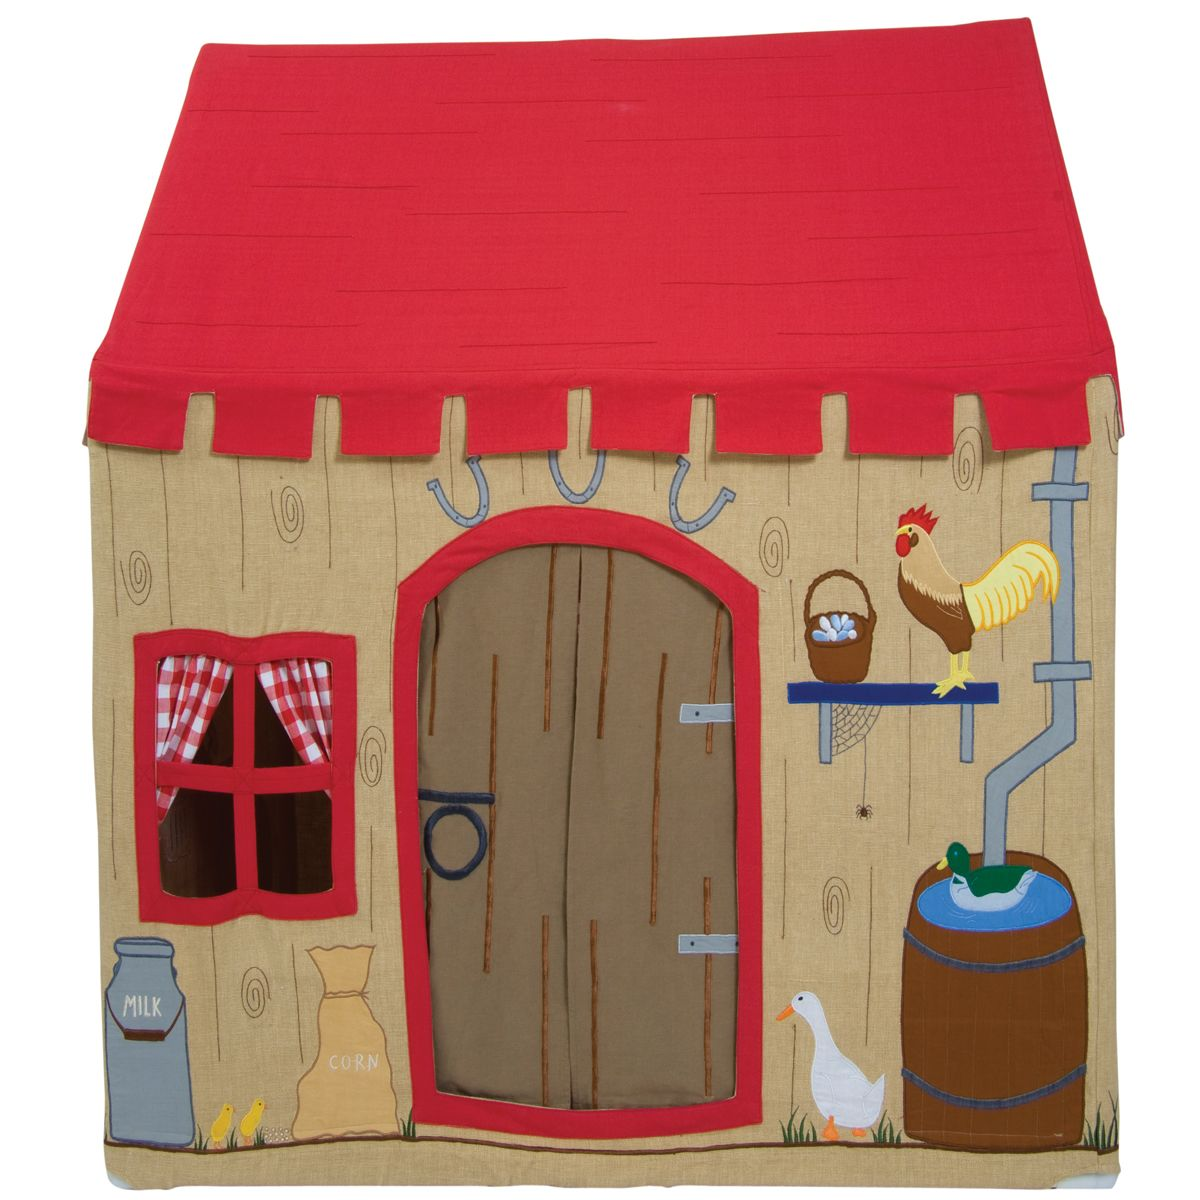 Barnyard Playhouse - fabric tent indoor playhouse for boys farm animal theme  sc 1 st  Pinterest & Barnyard Playhouse - fabric tent indoor playhouse for boys farm ...